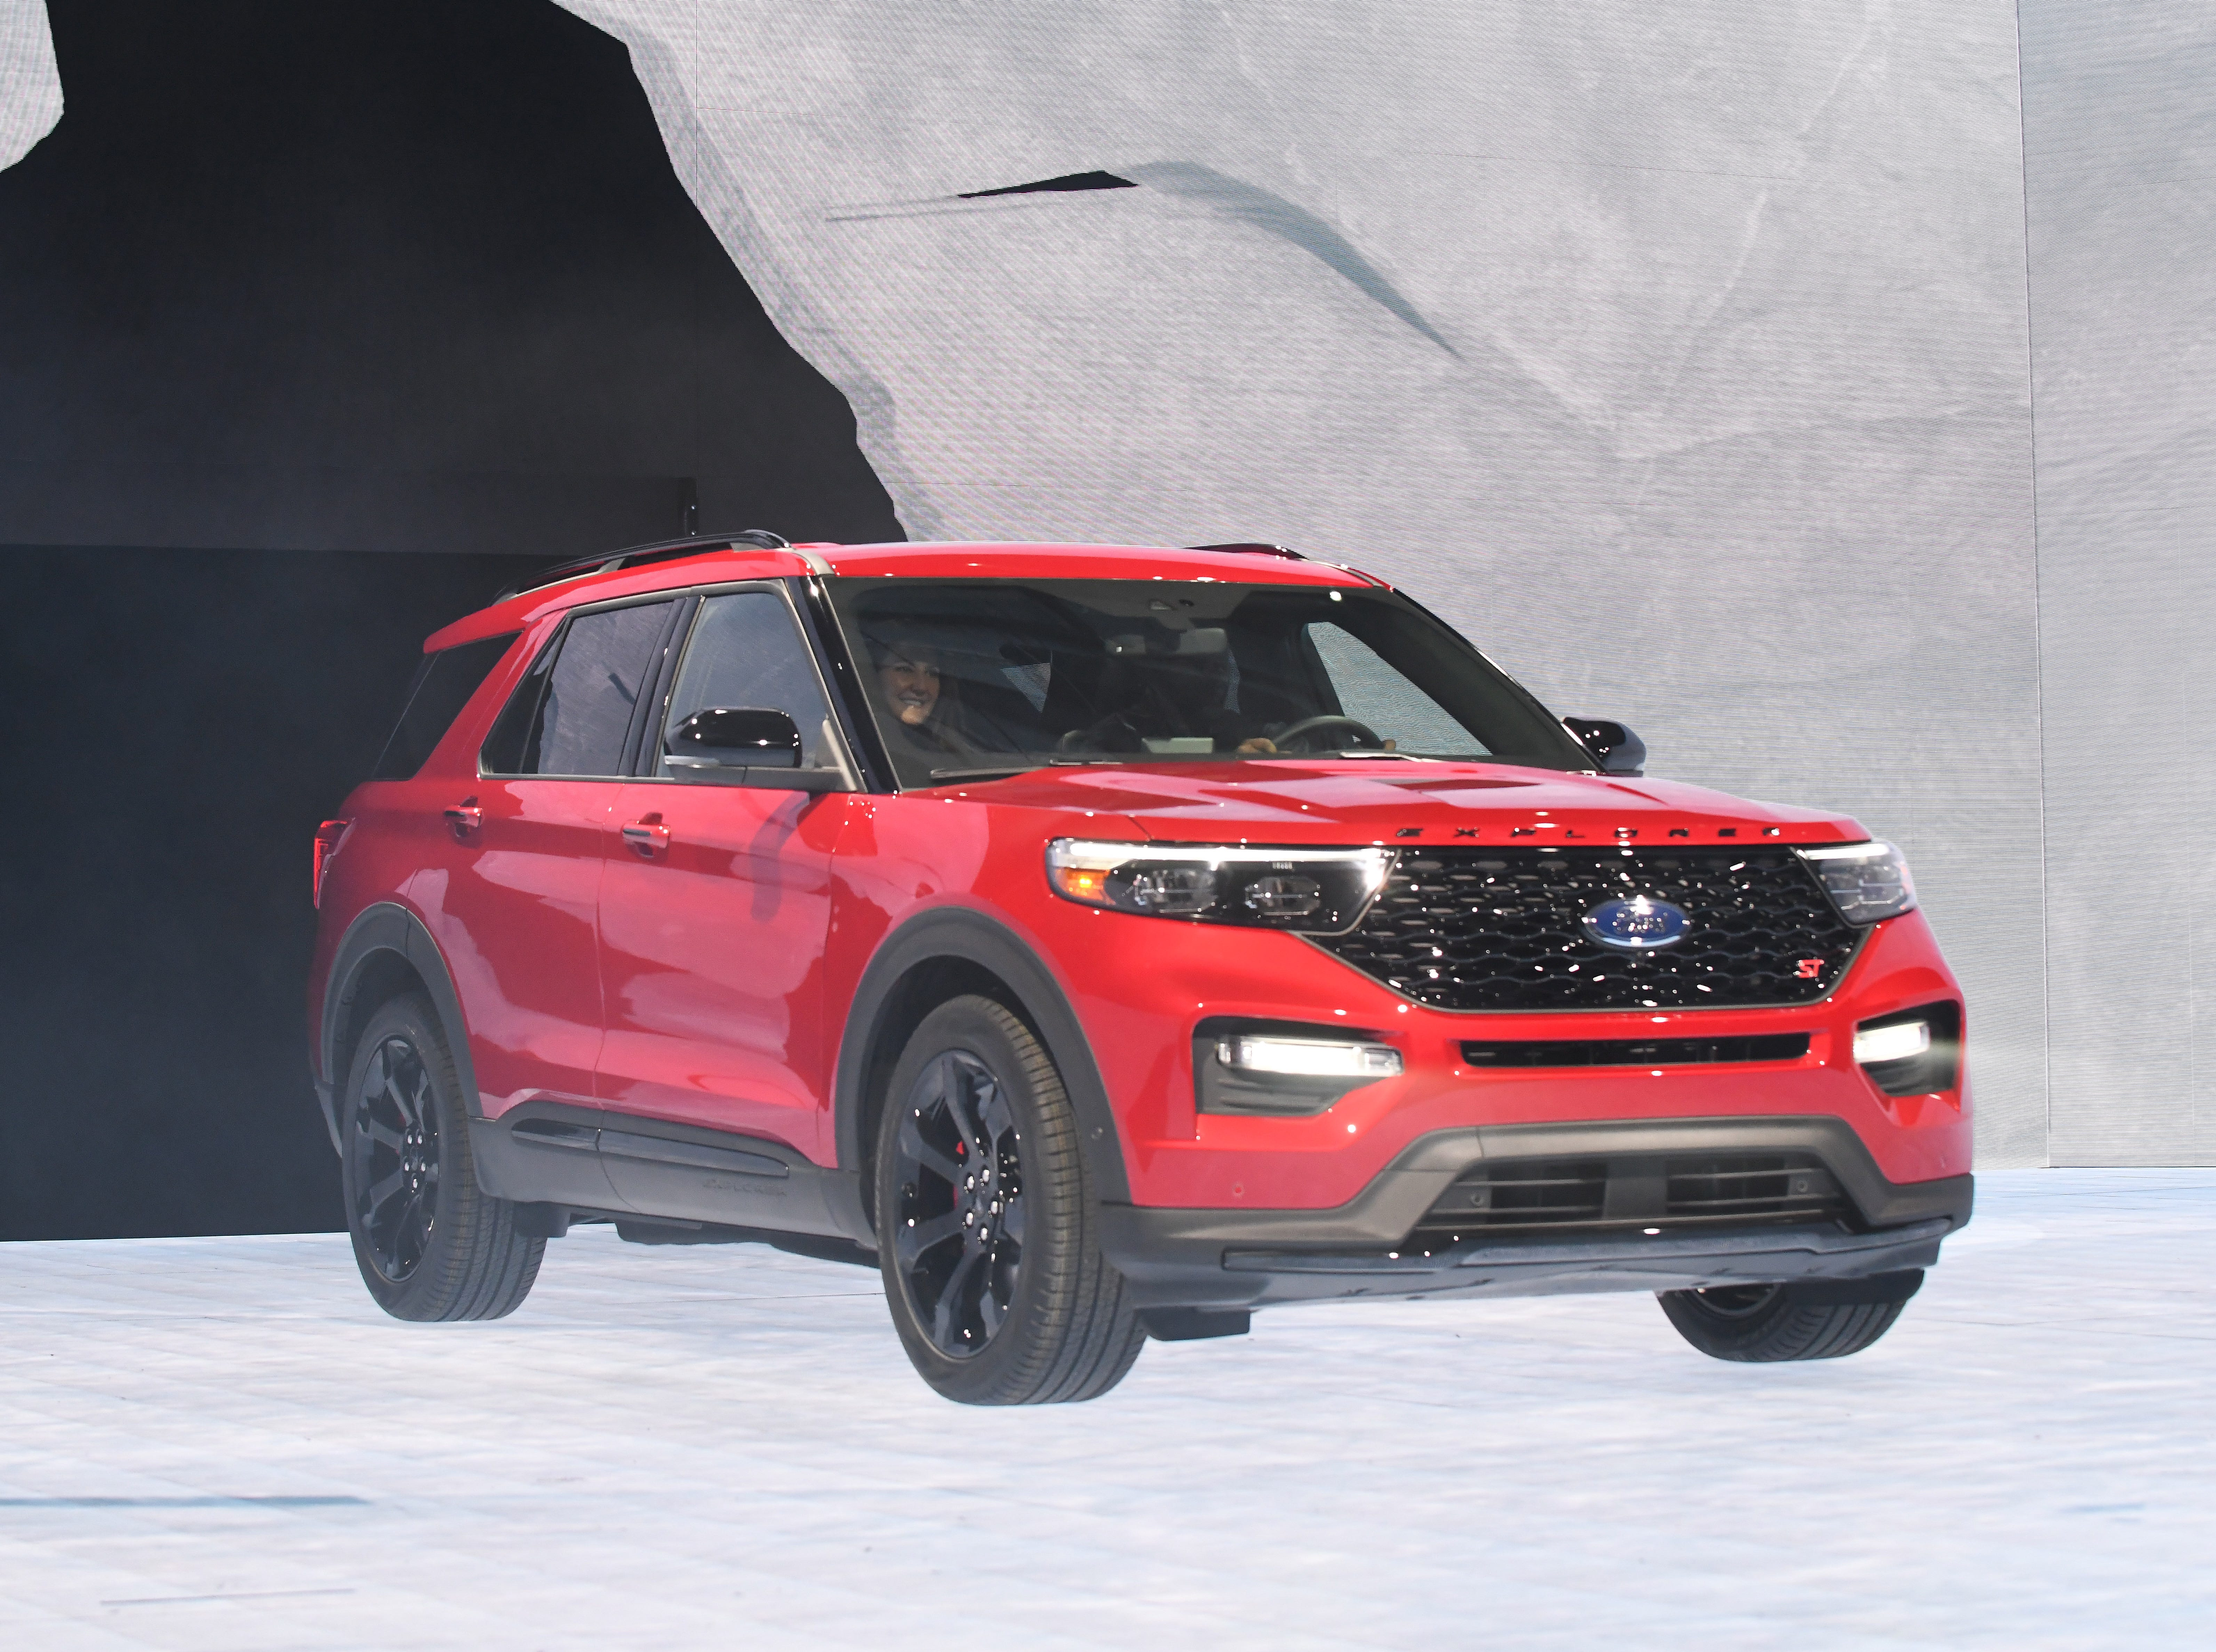 Ford Explorer ST is introduced on stage at the North American International Auto Show in Detroit on Monday, Jan. 14, 2019.